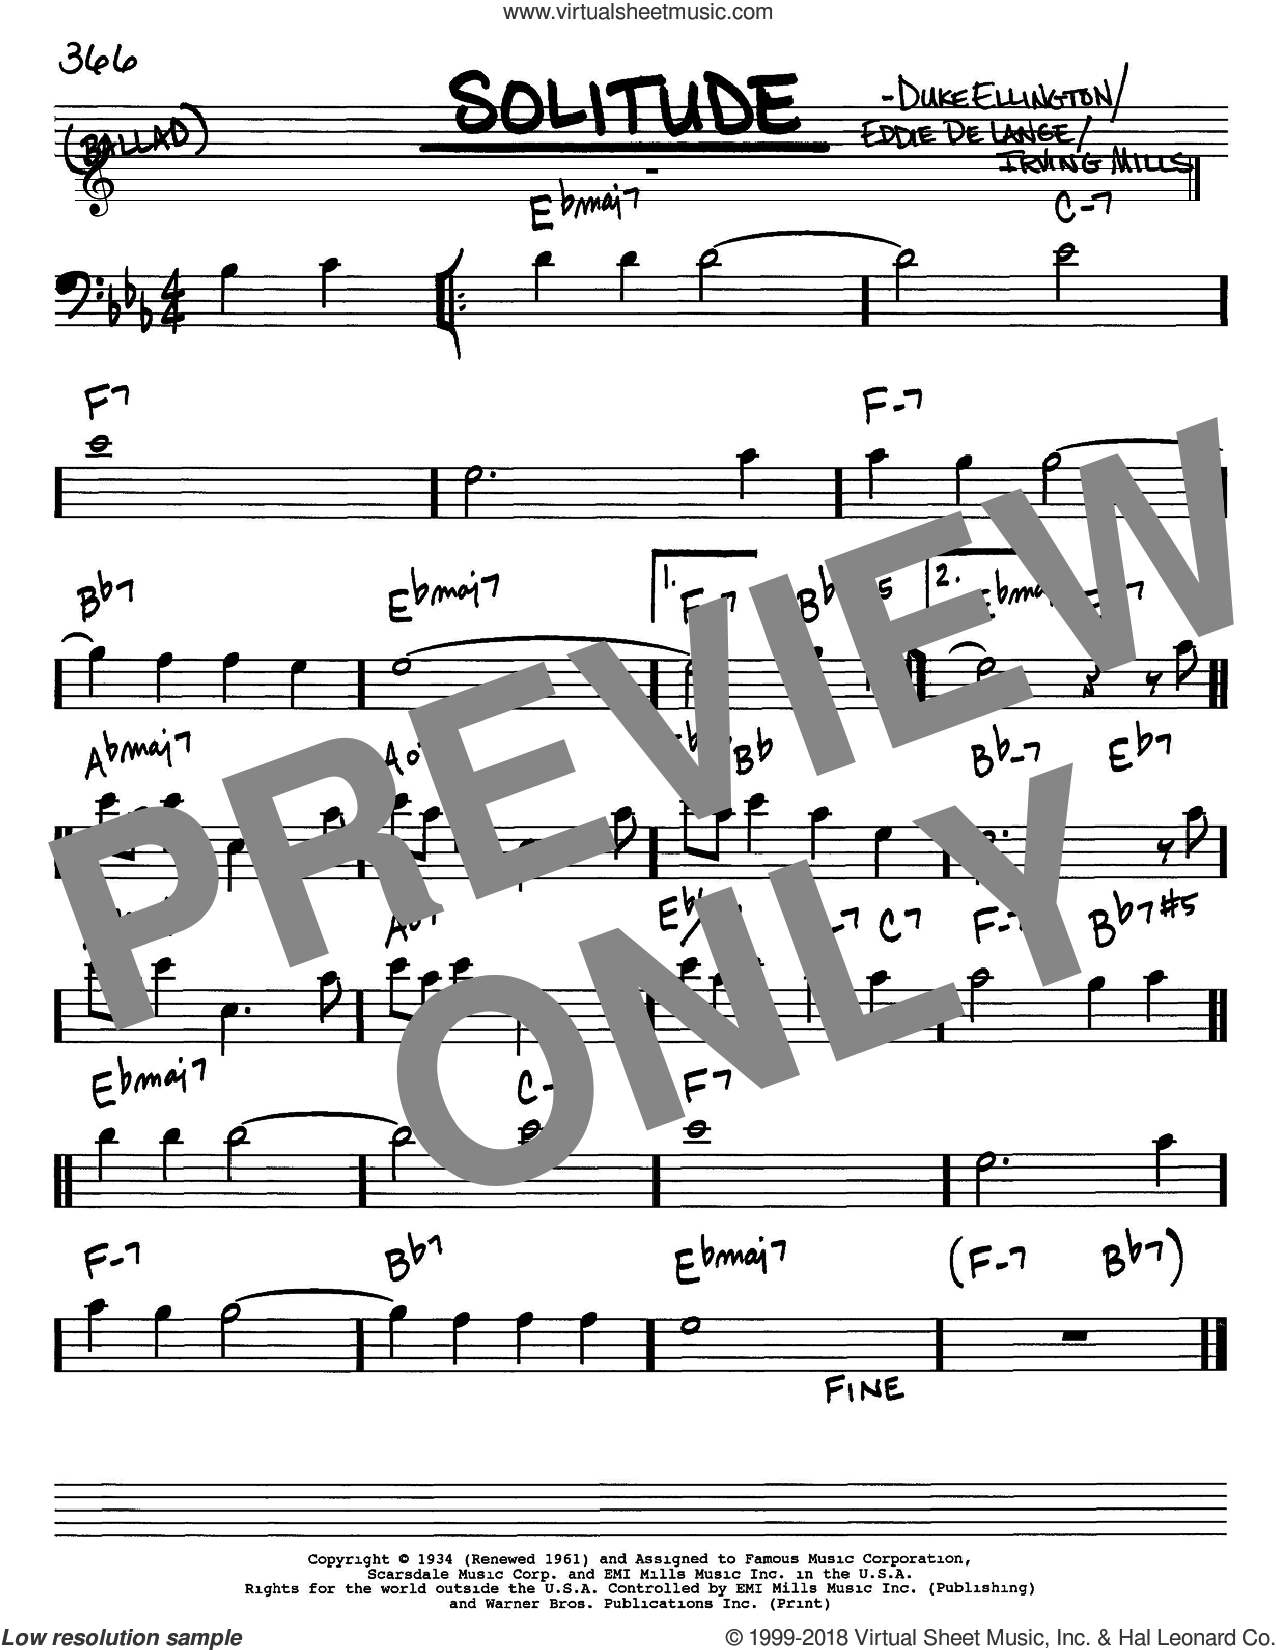 Solitude sheet music for voice and other instruments (Bass Clef ) by Irving Mills, Duke Ellington and Eddie DeLange. Score Image Preview.